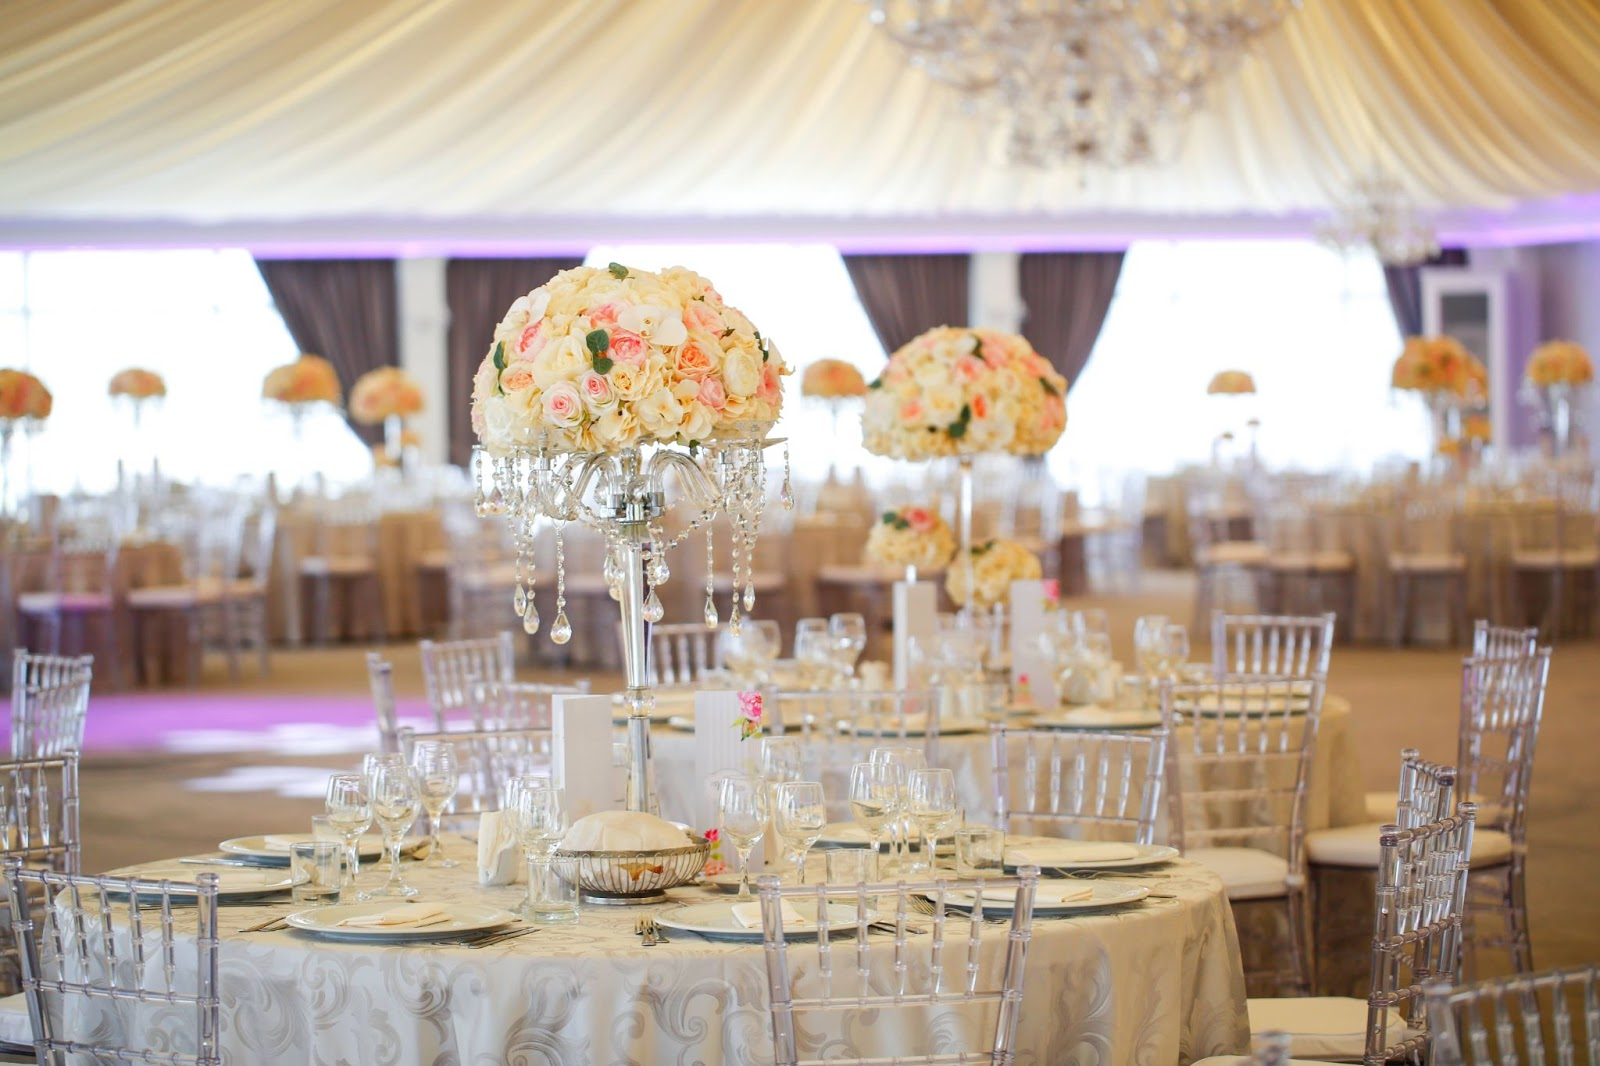 A wedding reception space with many tables and floral centerpieces.